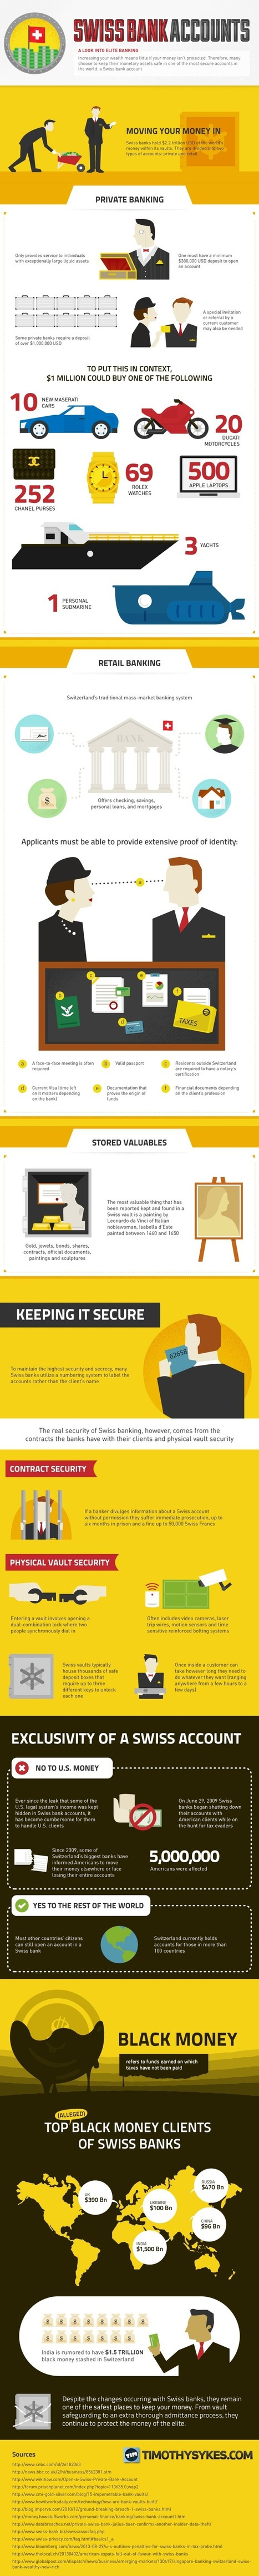 For Future Reference: Swiss Bank Accounts [Infographic]   Infographics   Scoop.it